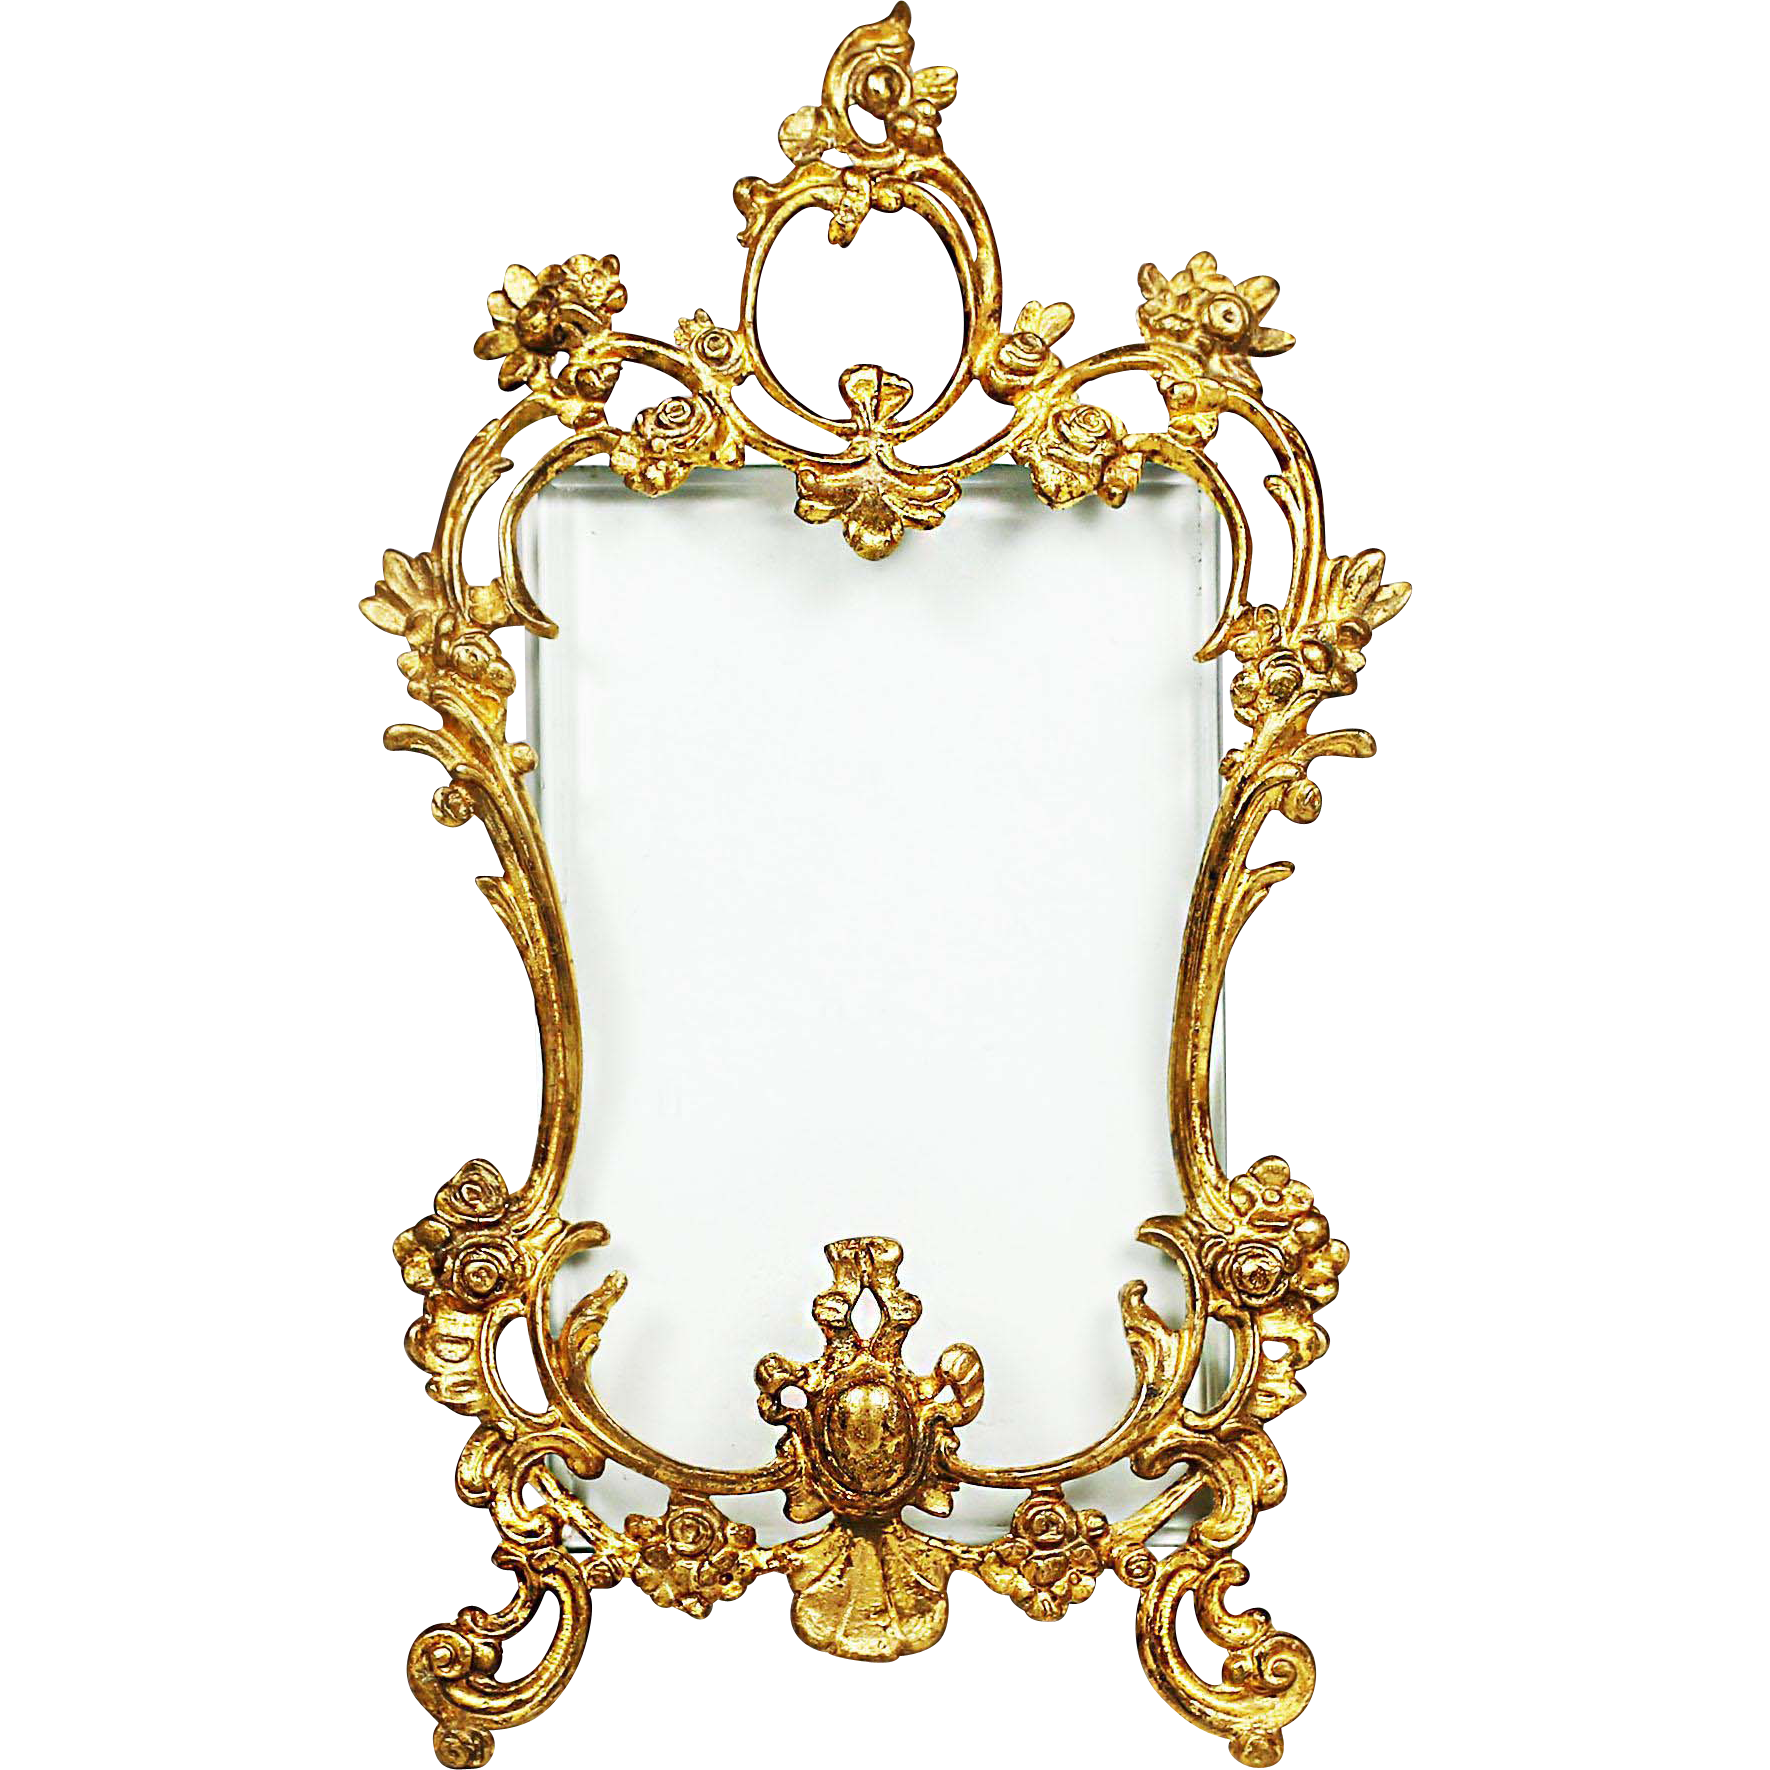 Baroque frame png. Antique french rococo gilded